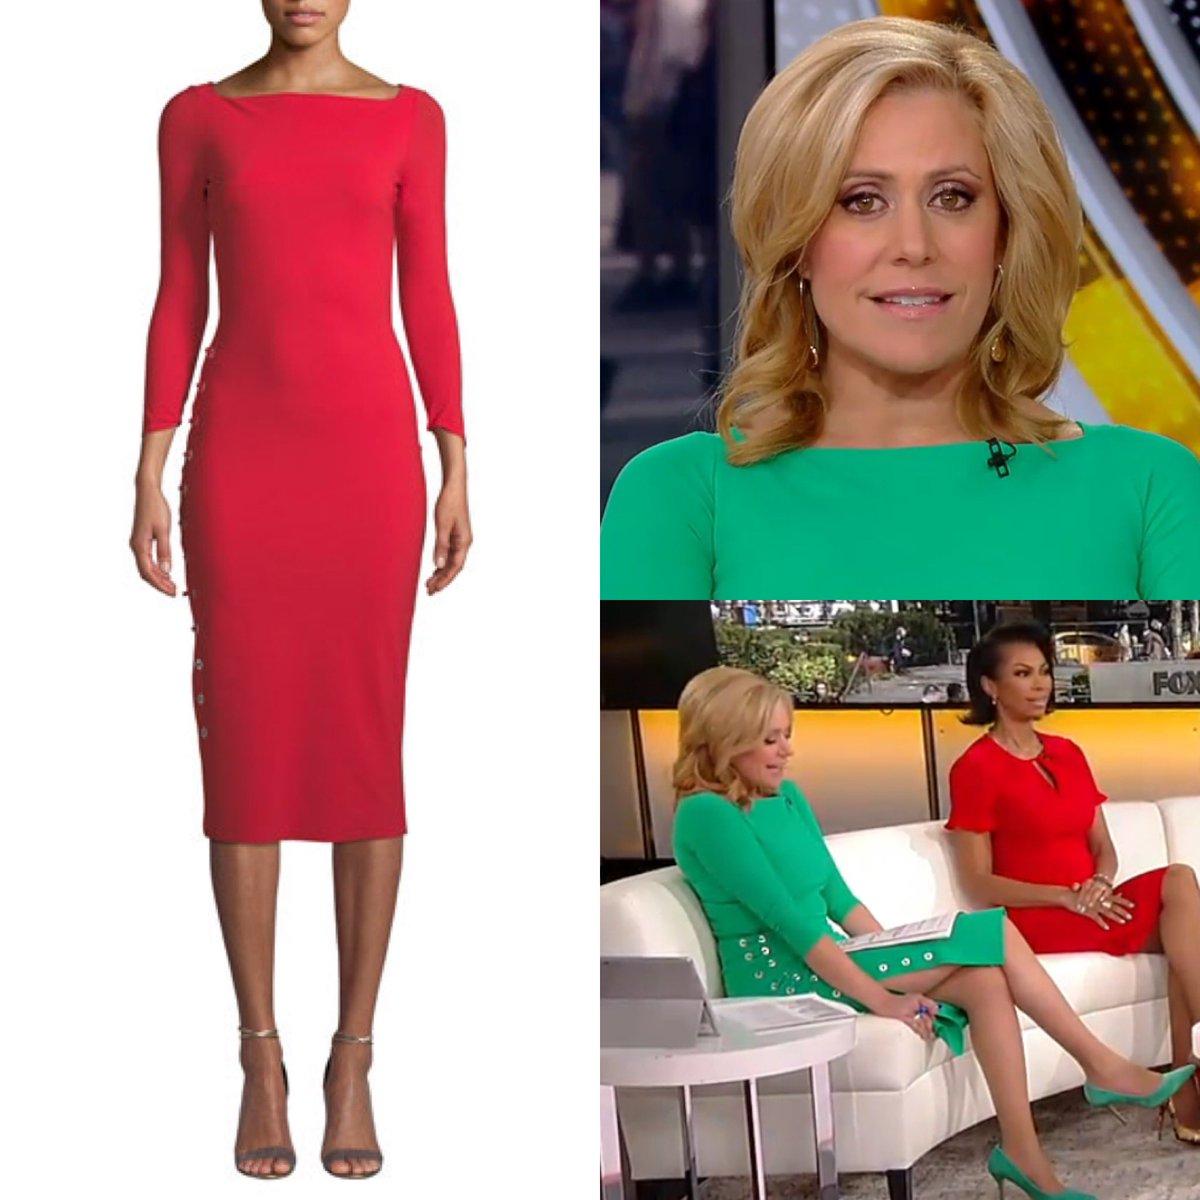 Melissa Francis (@MelissaAFrancis) wore a Chiara Boni 'Prudencia' Side Lace Up Sheath dress today on #Outnumbered - the dress is on sale in red at Bergdorf Goodman.  #foxnews #foxnewsfashion pic.twitter.com/sJtFBbcFFK